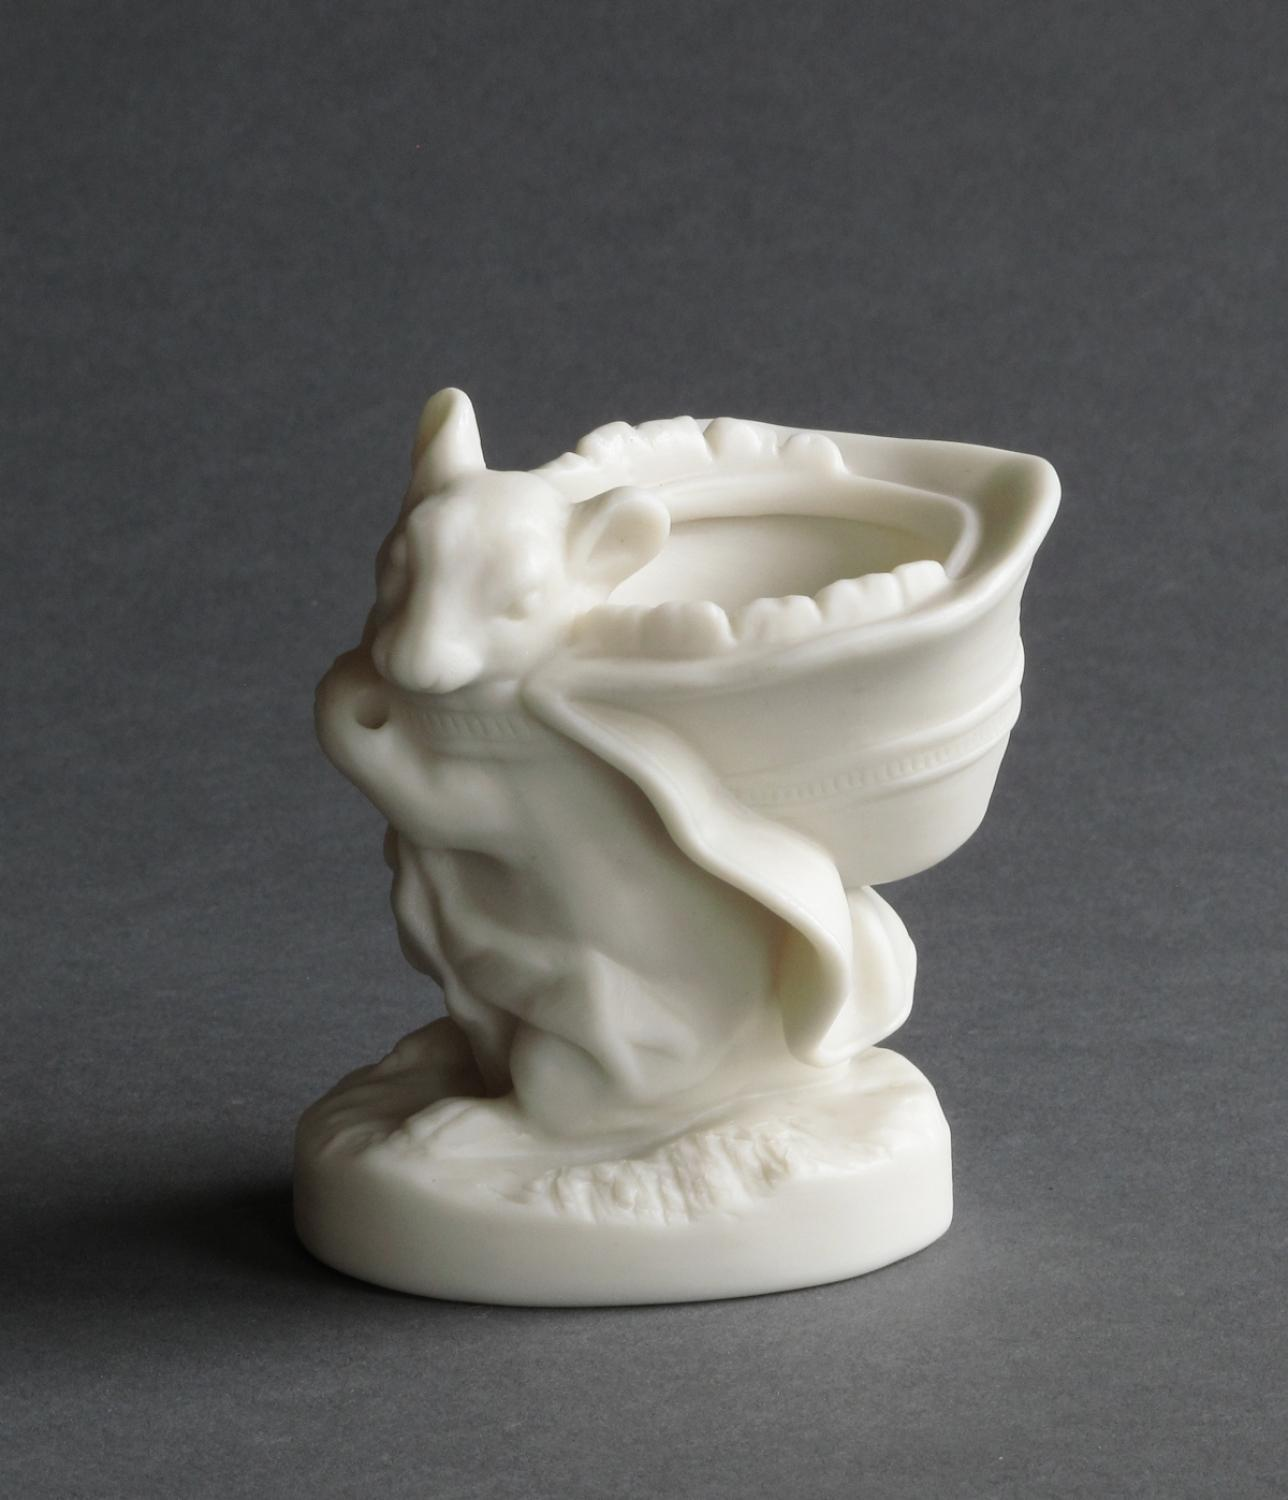 Charming Copeland parian mouse & bonnet